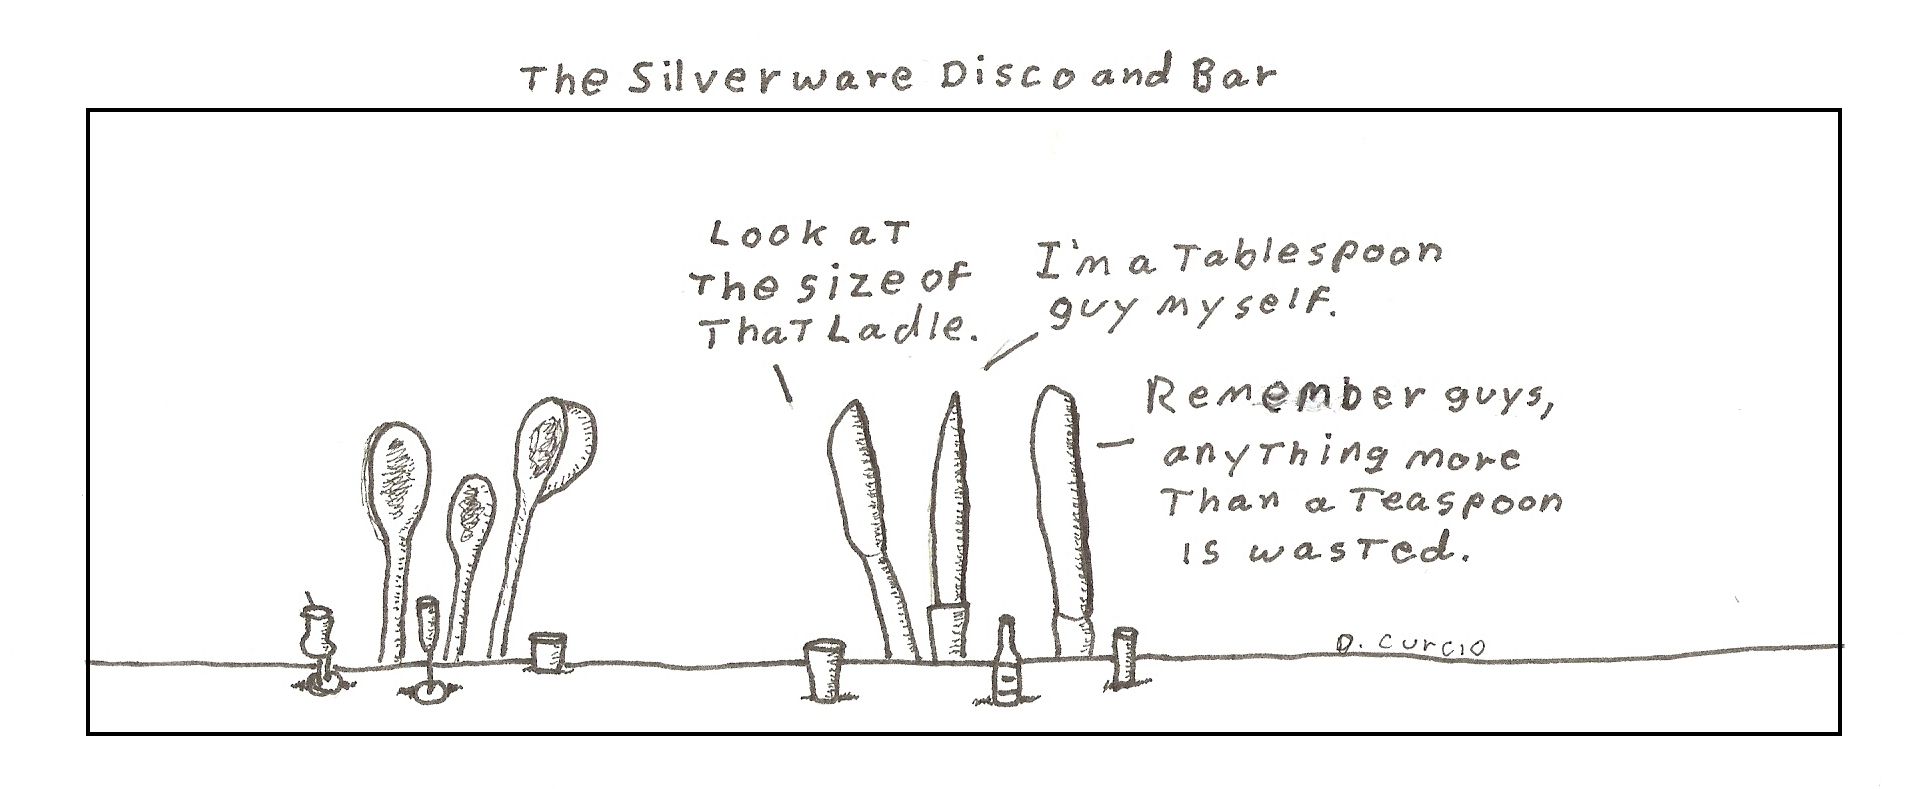 Silverware Disco And Bar 1